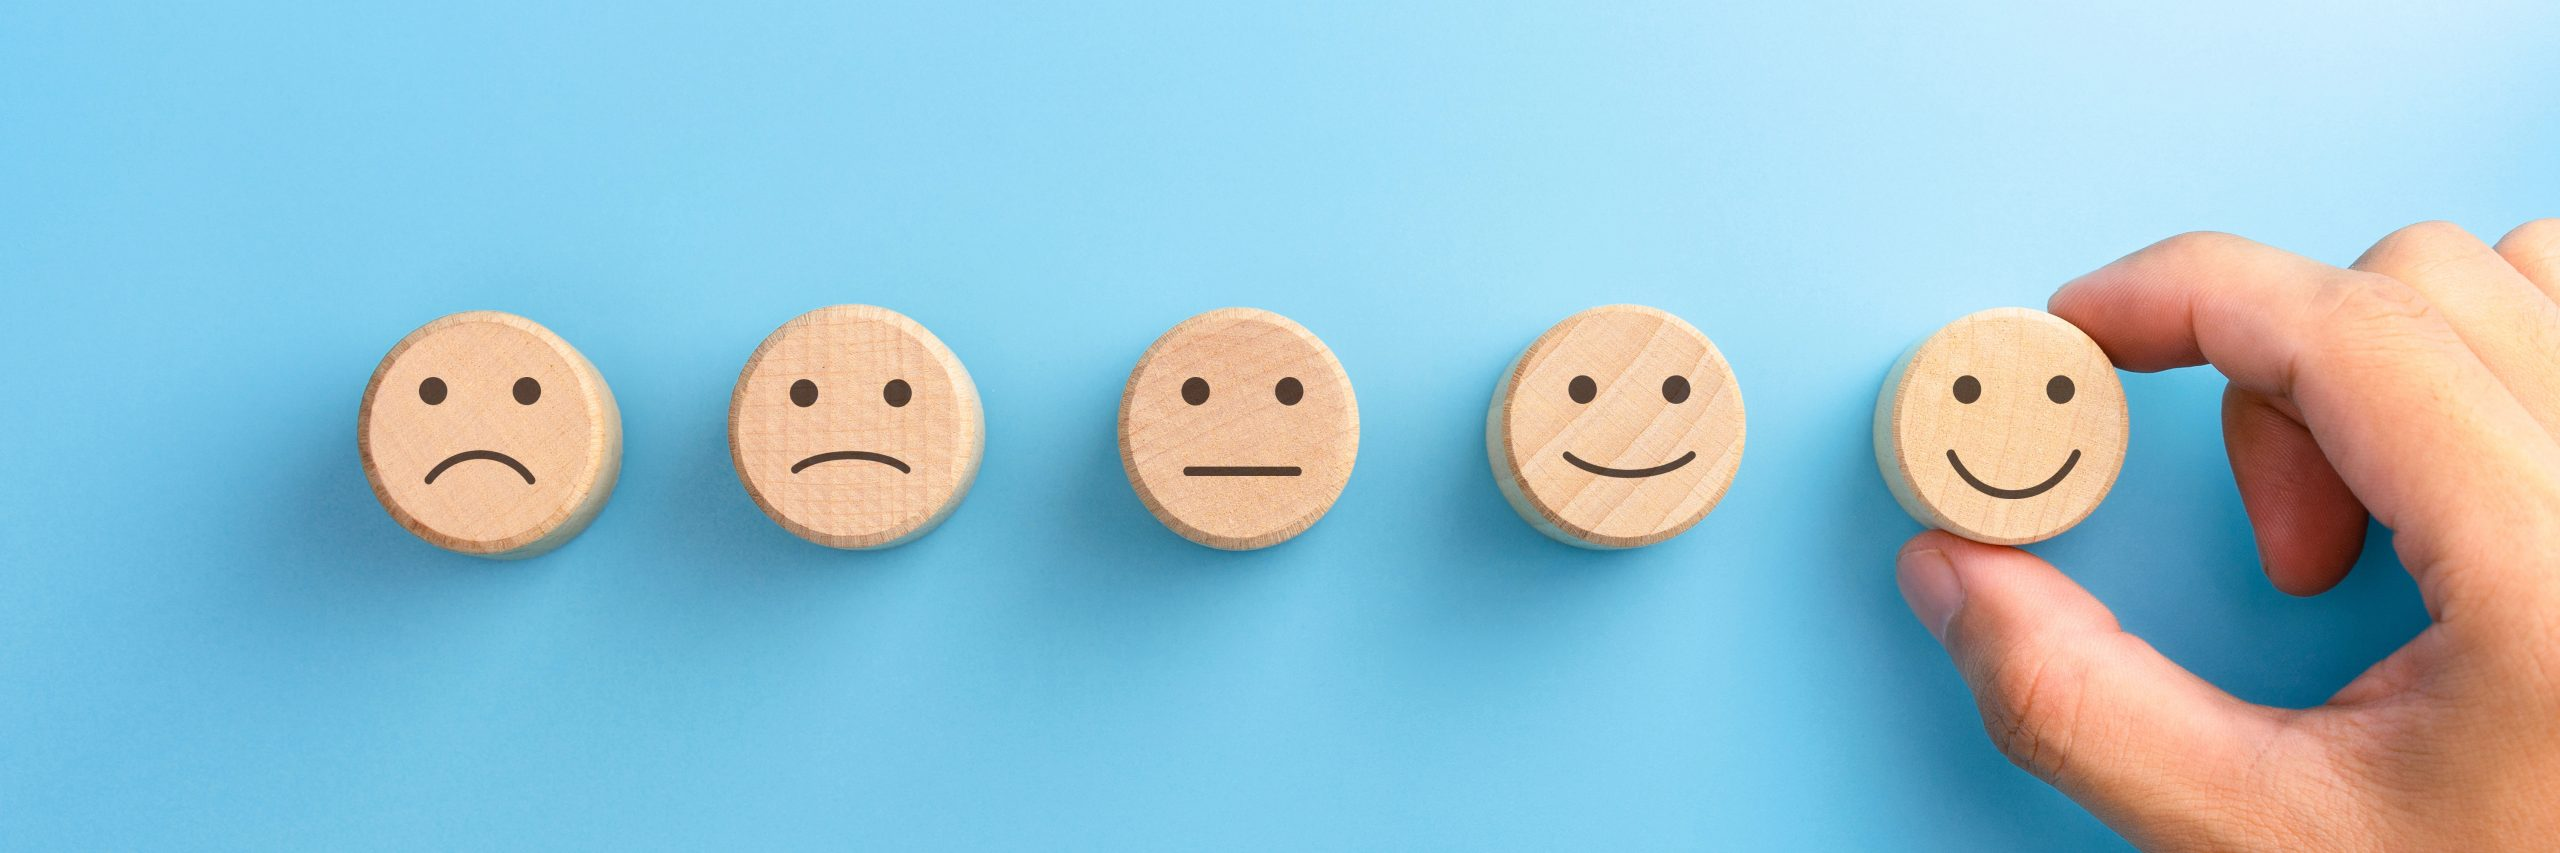 A row of wooden knobs with smiley faces depicting the range of audience experience.